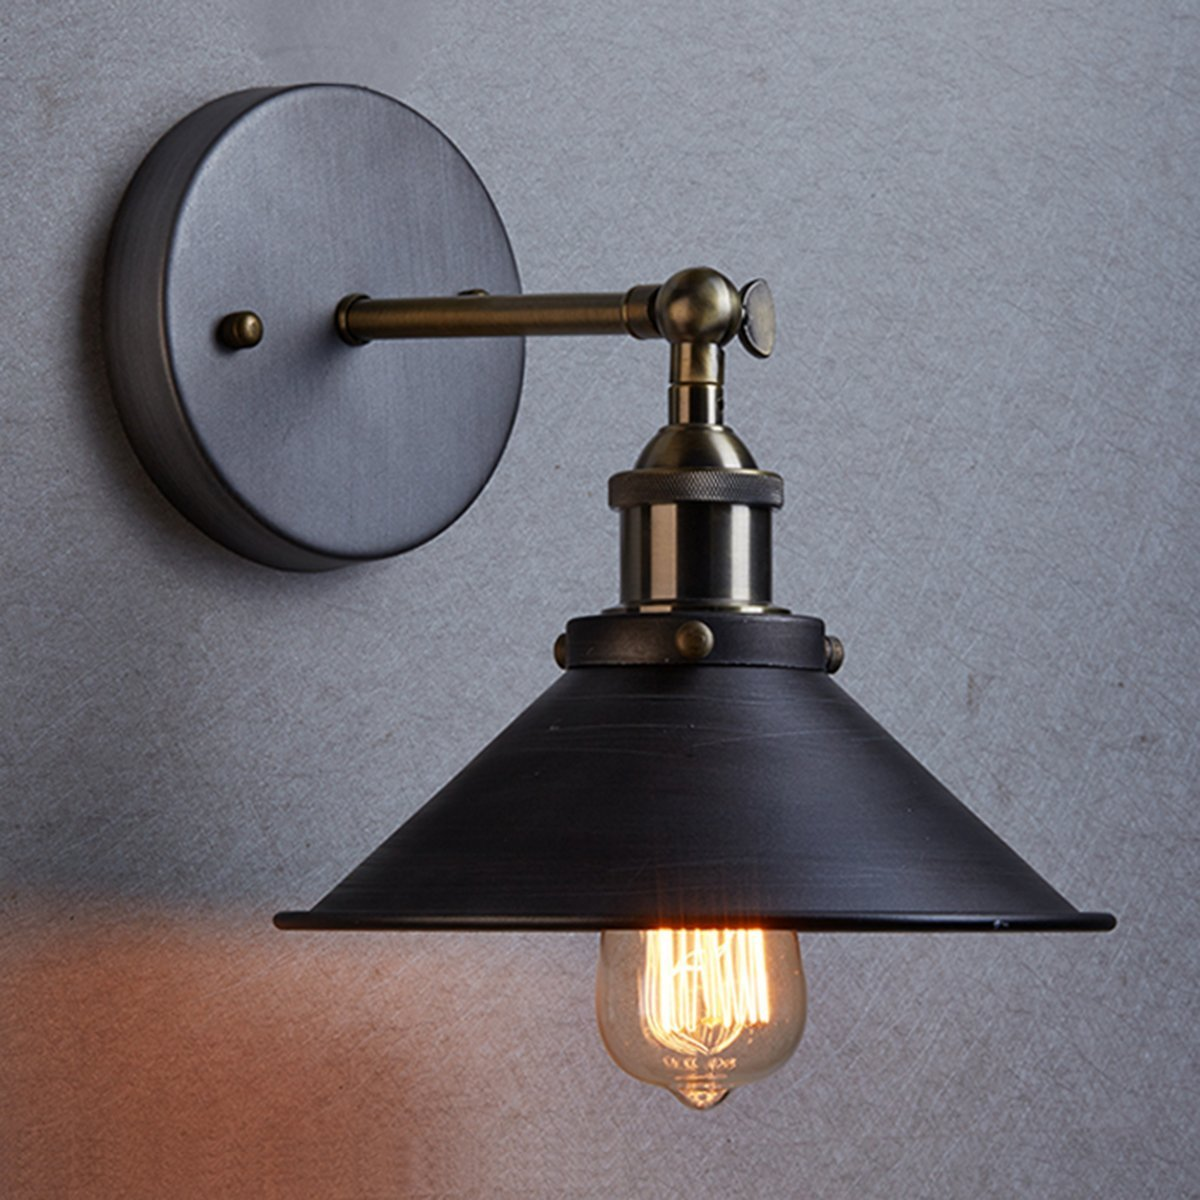 Claxy ecopower industrial edison simplicity 1 light wall lamp aged claxy ecopower industrial edison simplicity 1 light wall lamp aged steel finished amazon mozeypictures Images